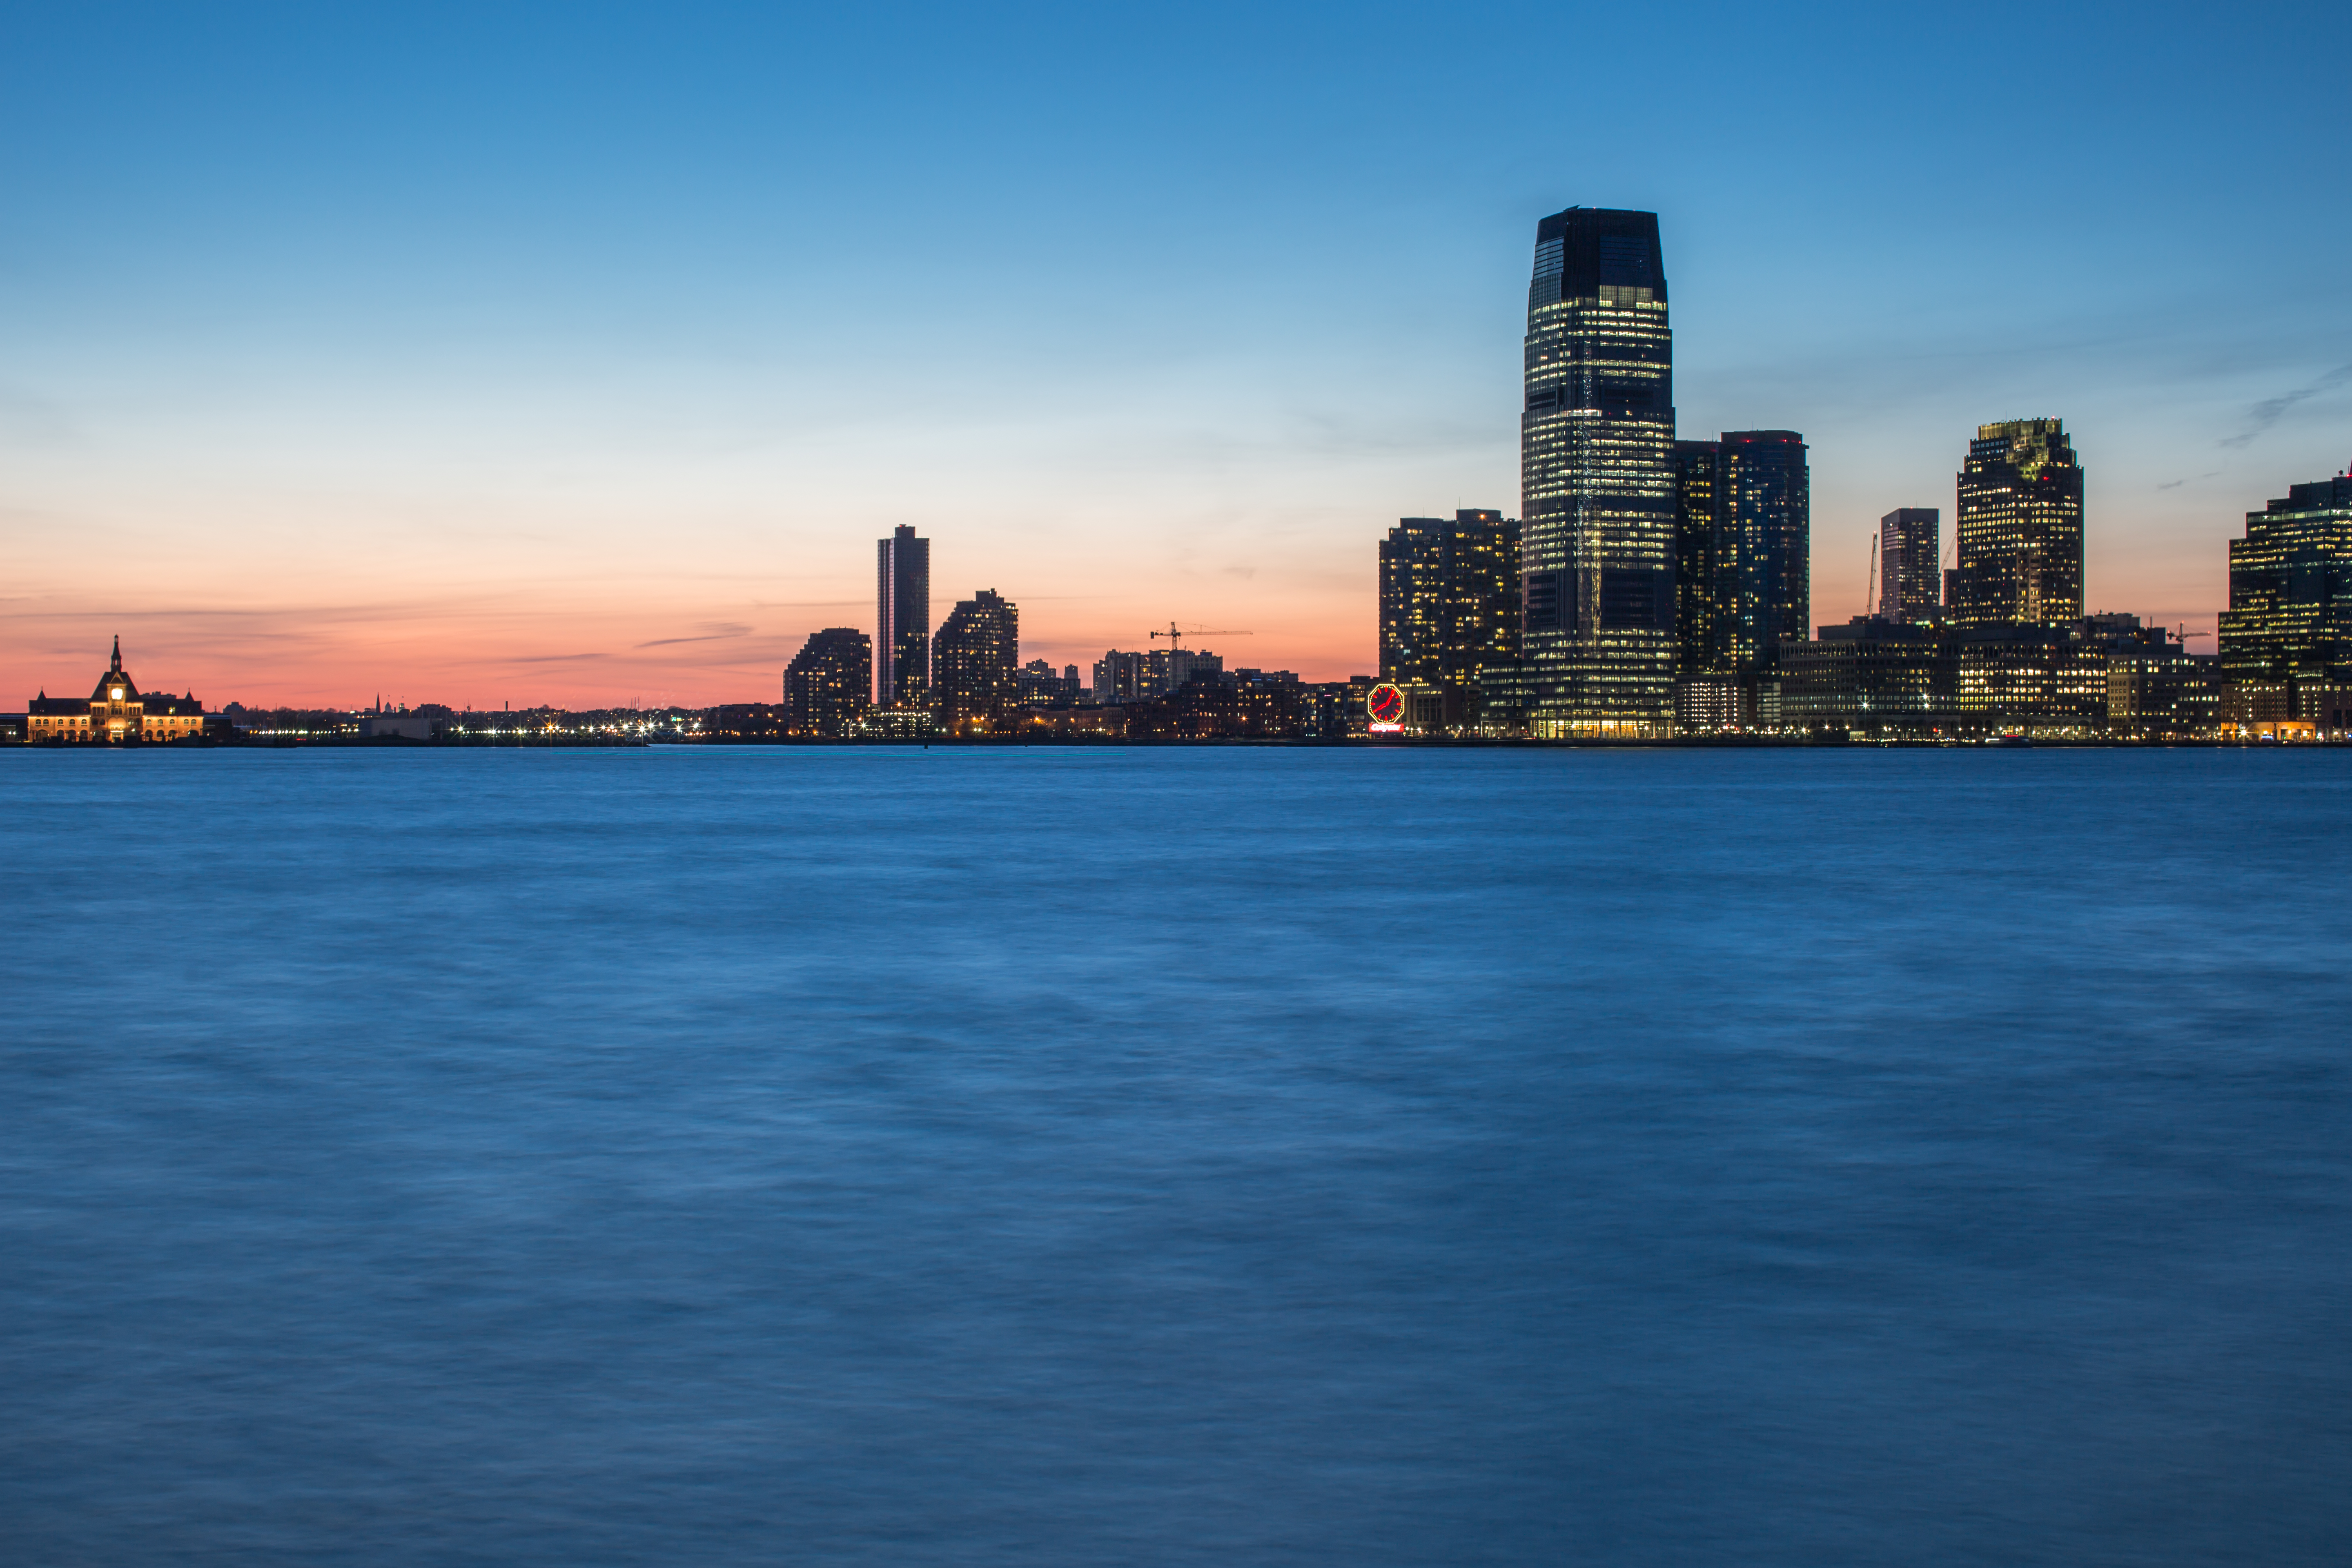 View on jersey city during sunset	 example image 1